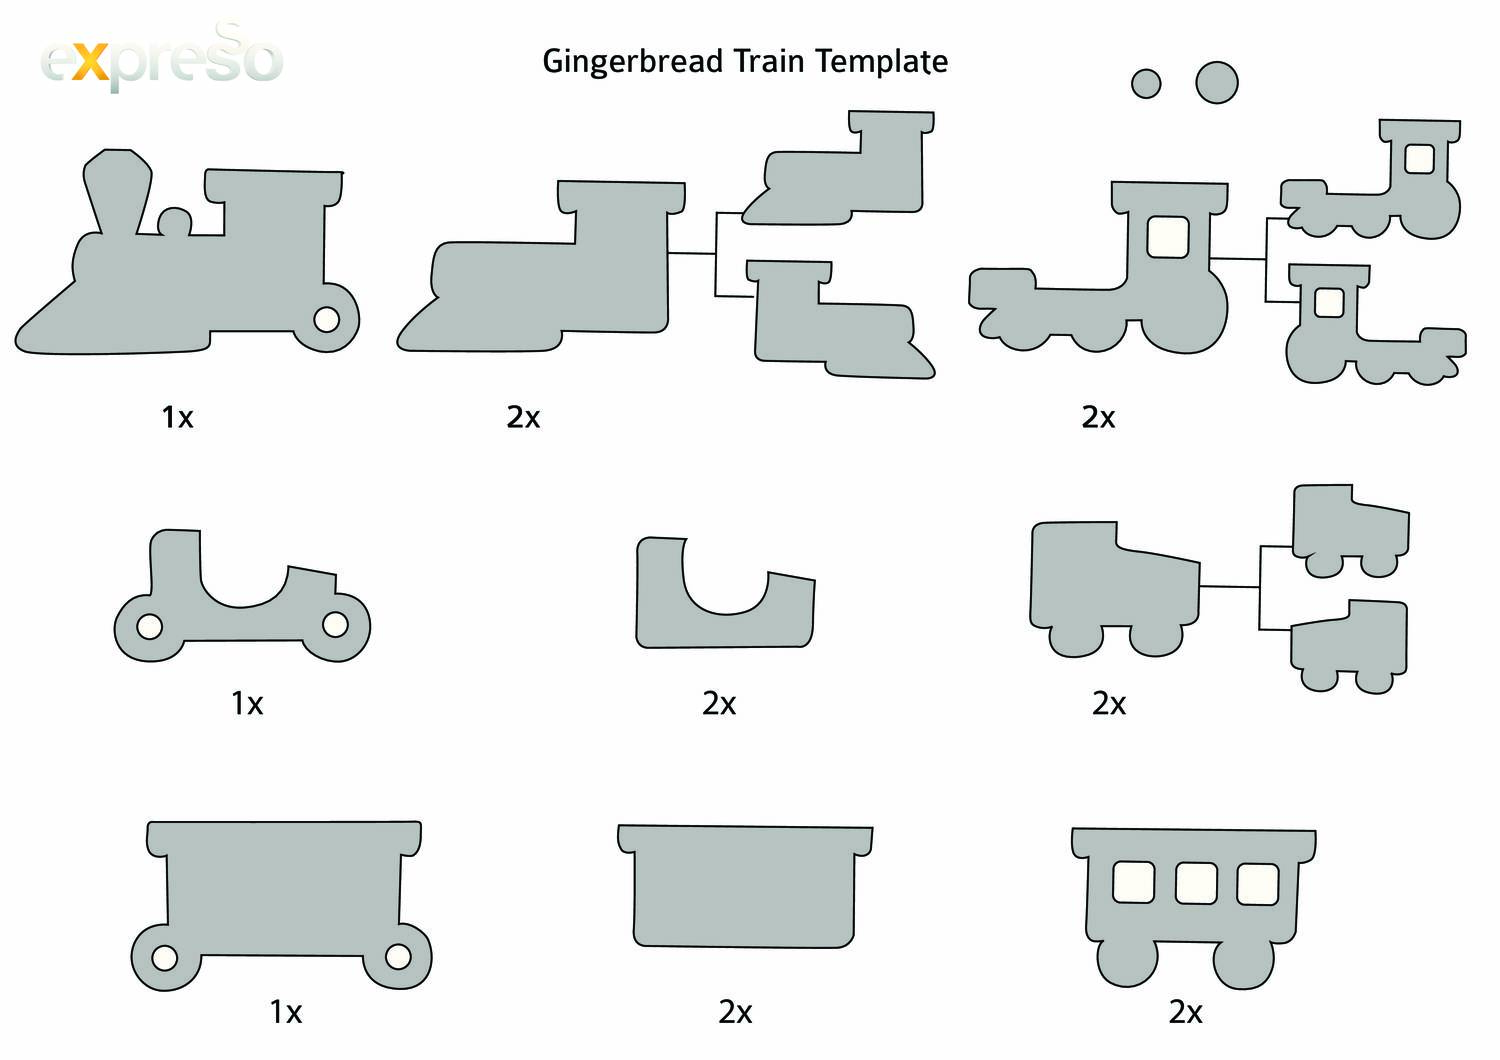 Gingerbread Train Template.pdf - DocDroid